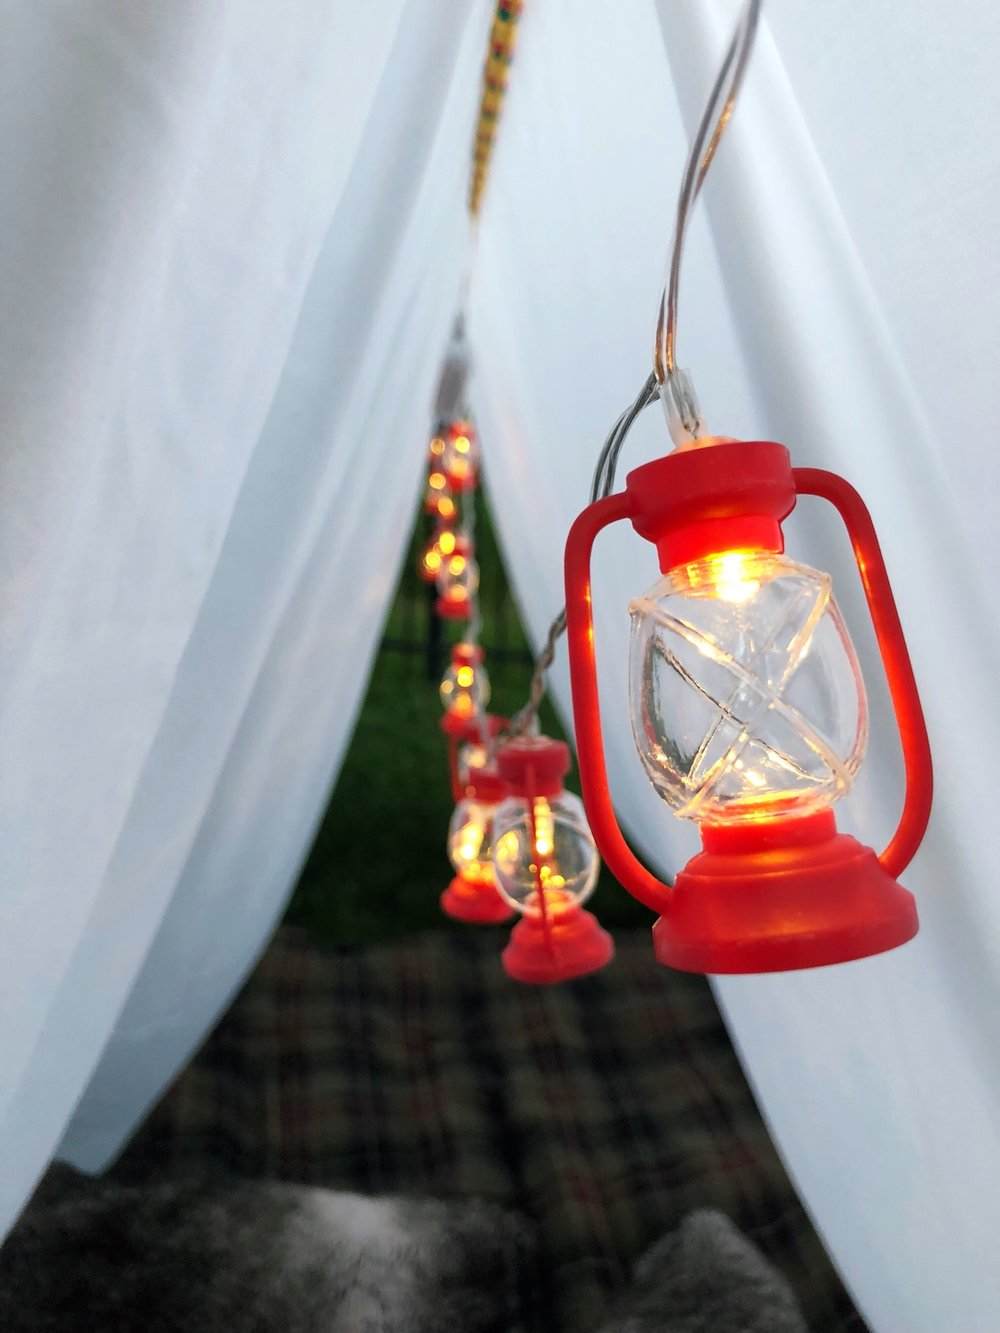 Outdoor Camping Tent Party_String Lights_Coleman Lanter_Target Dollar Spot_DesignOrganizeParty.JPG